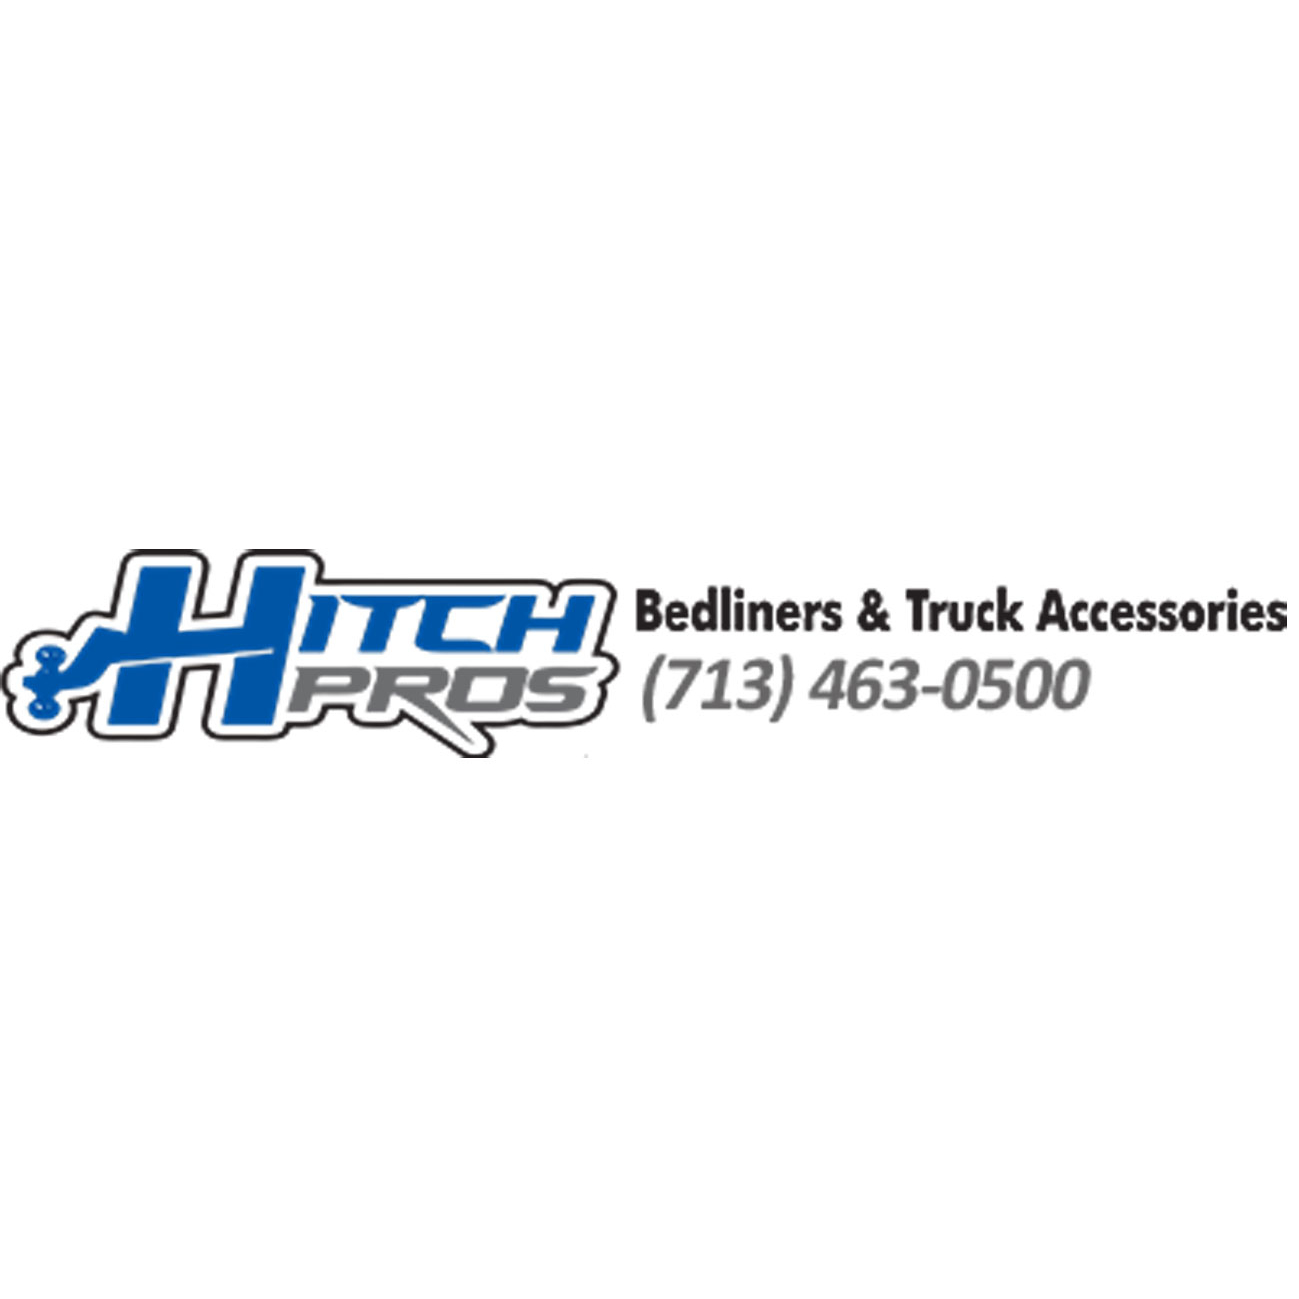 Hitch Pros Bed liners & Truck Accessories